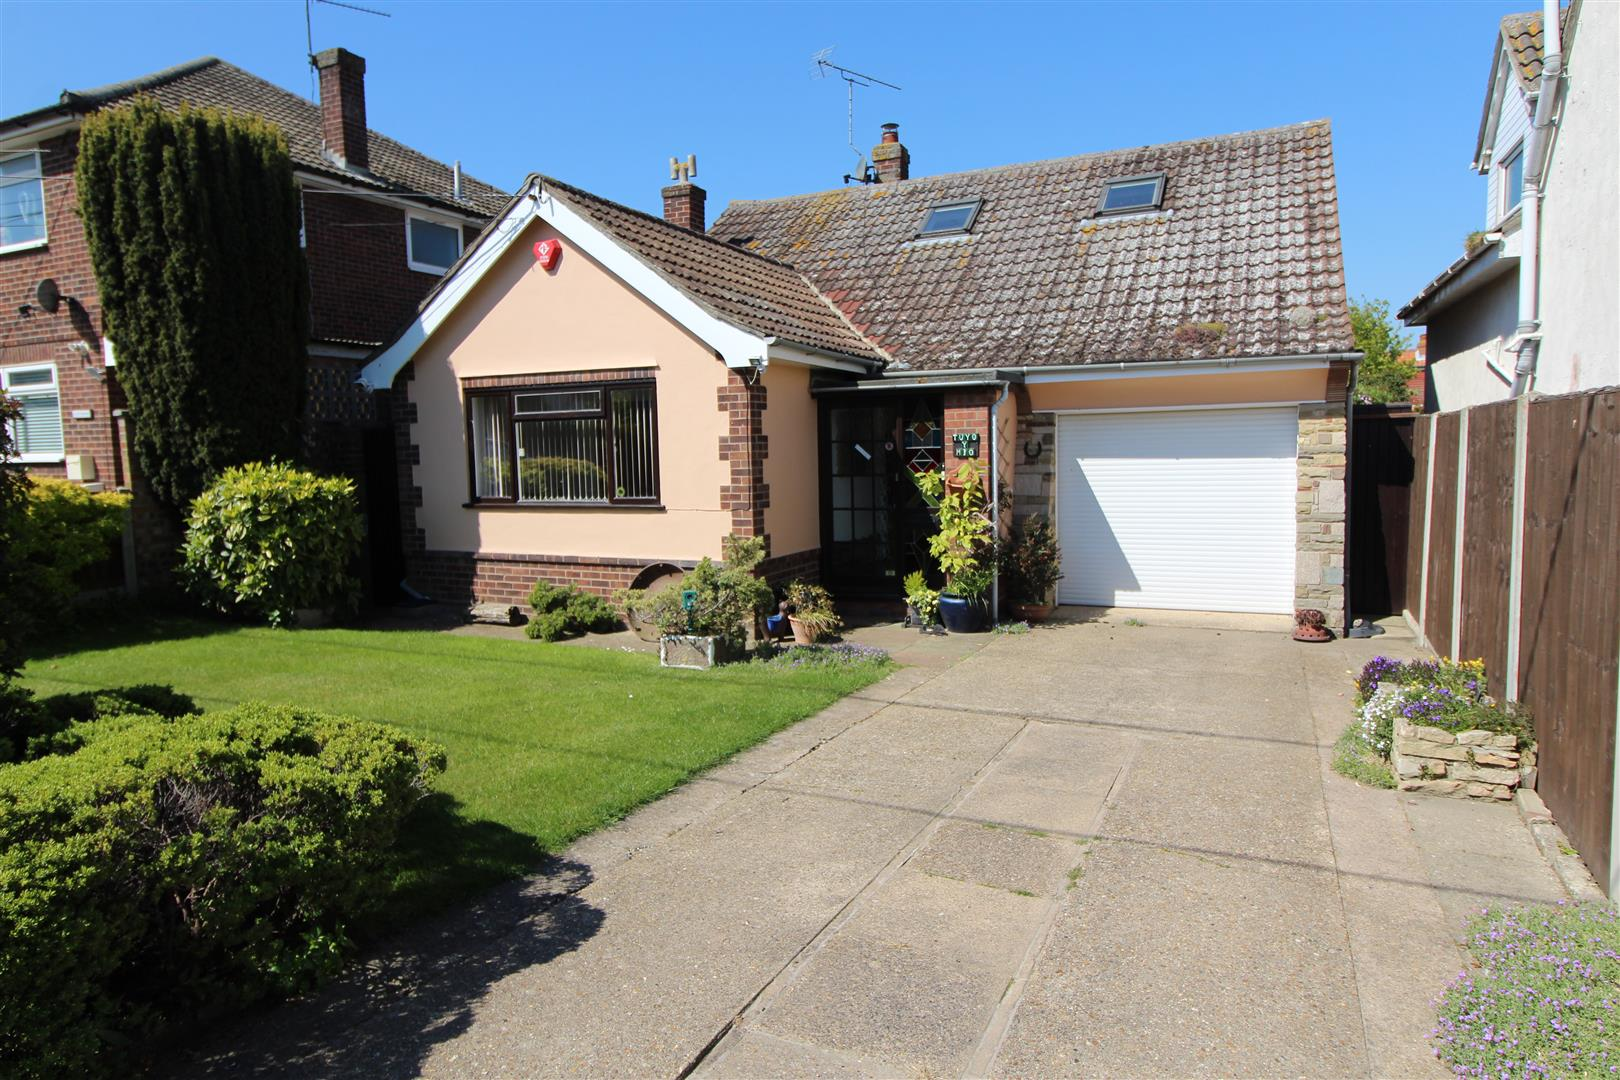 Edith Road, Kirby-Le-Soken, Essex, CO13 0DH